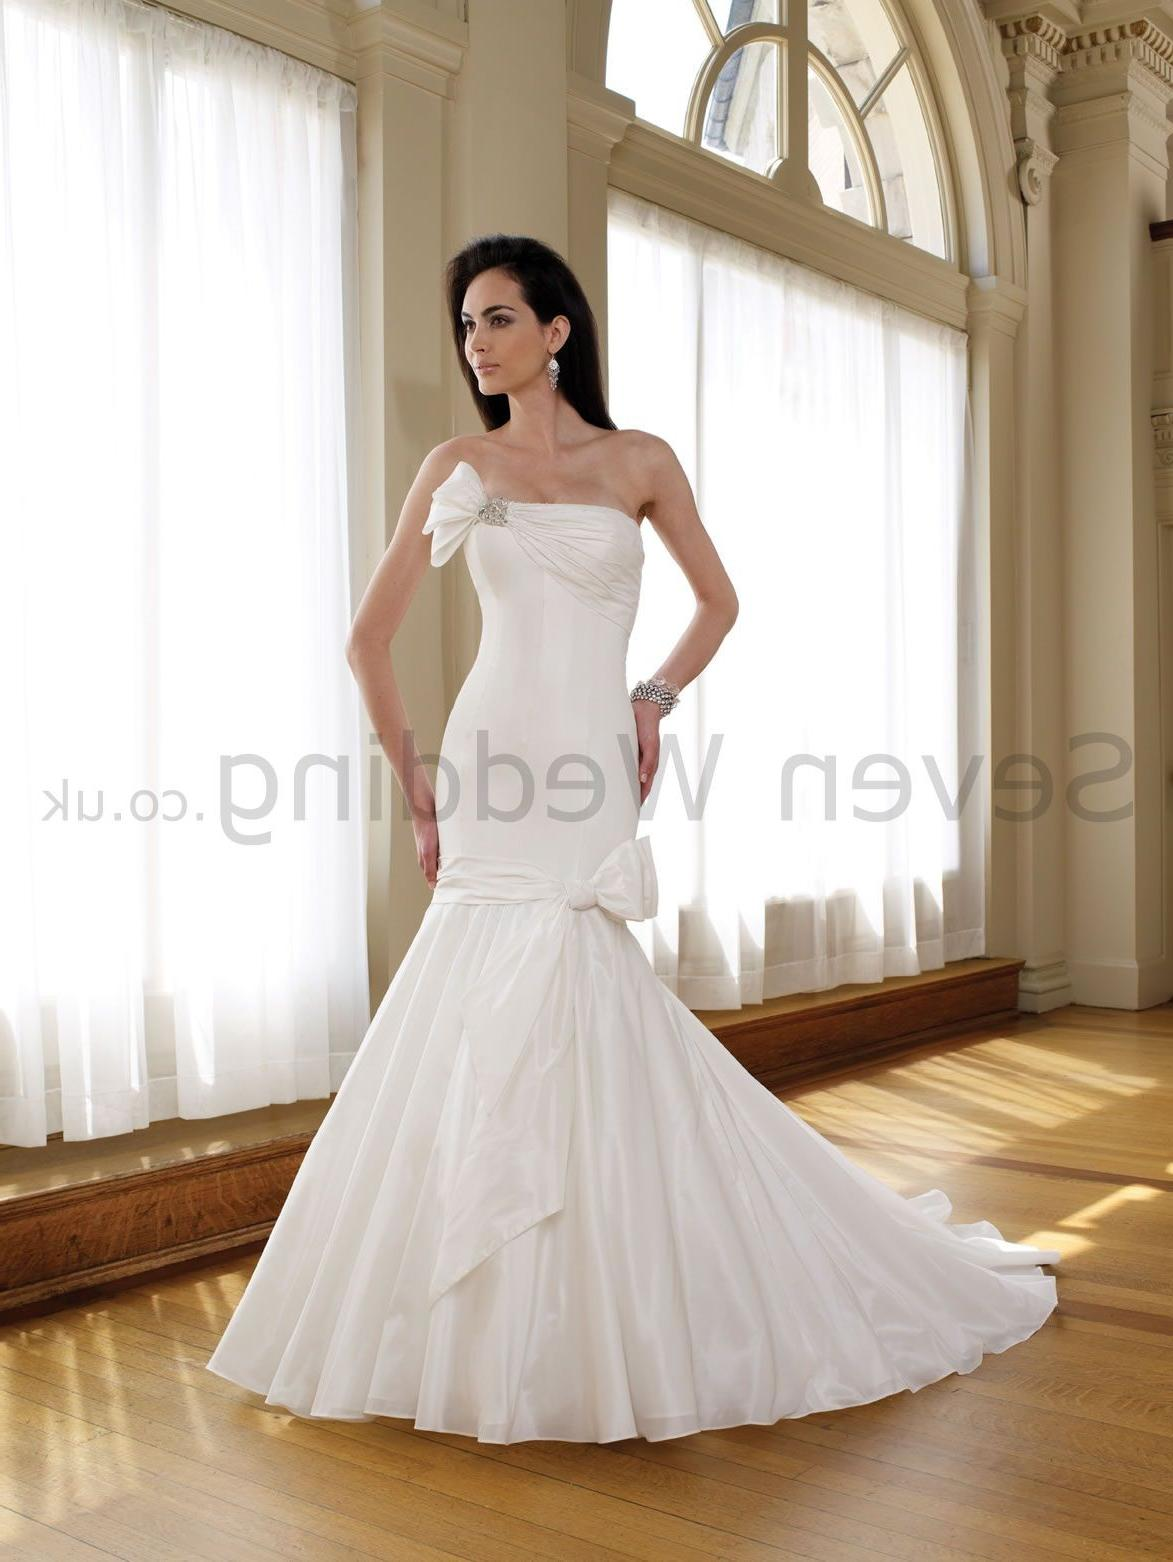 Wedding Dress. Luxurious